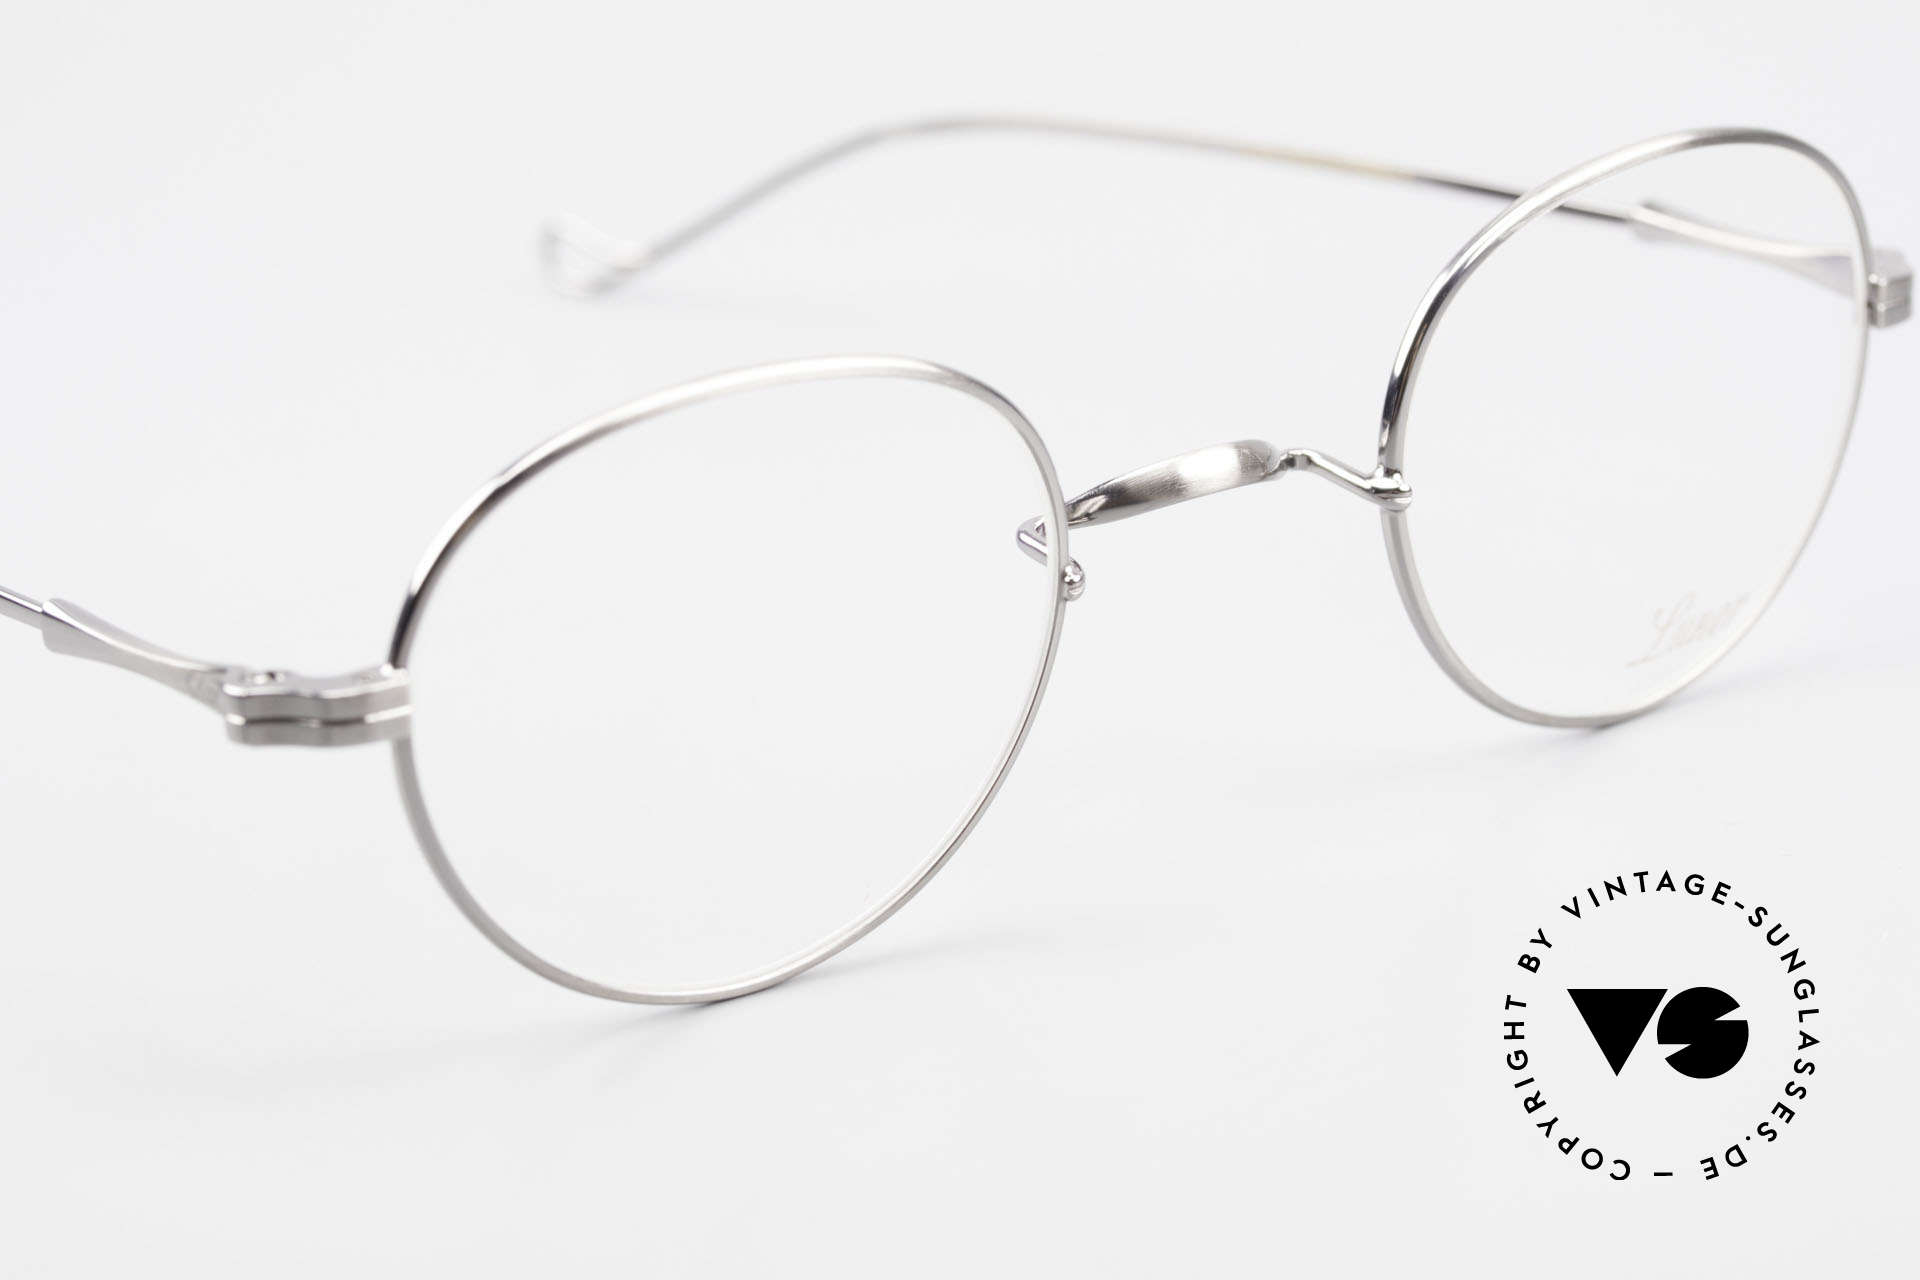 Lunor II 22 Lunor Glasses Special Edition, unworn RARITY for all lovers of quality from app. 1998, Made for Men and Women